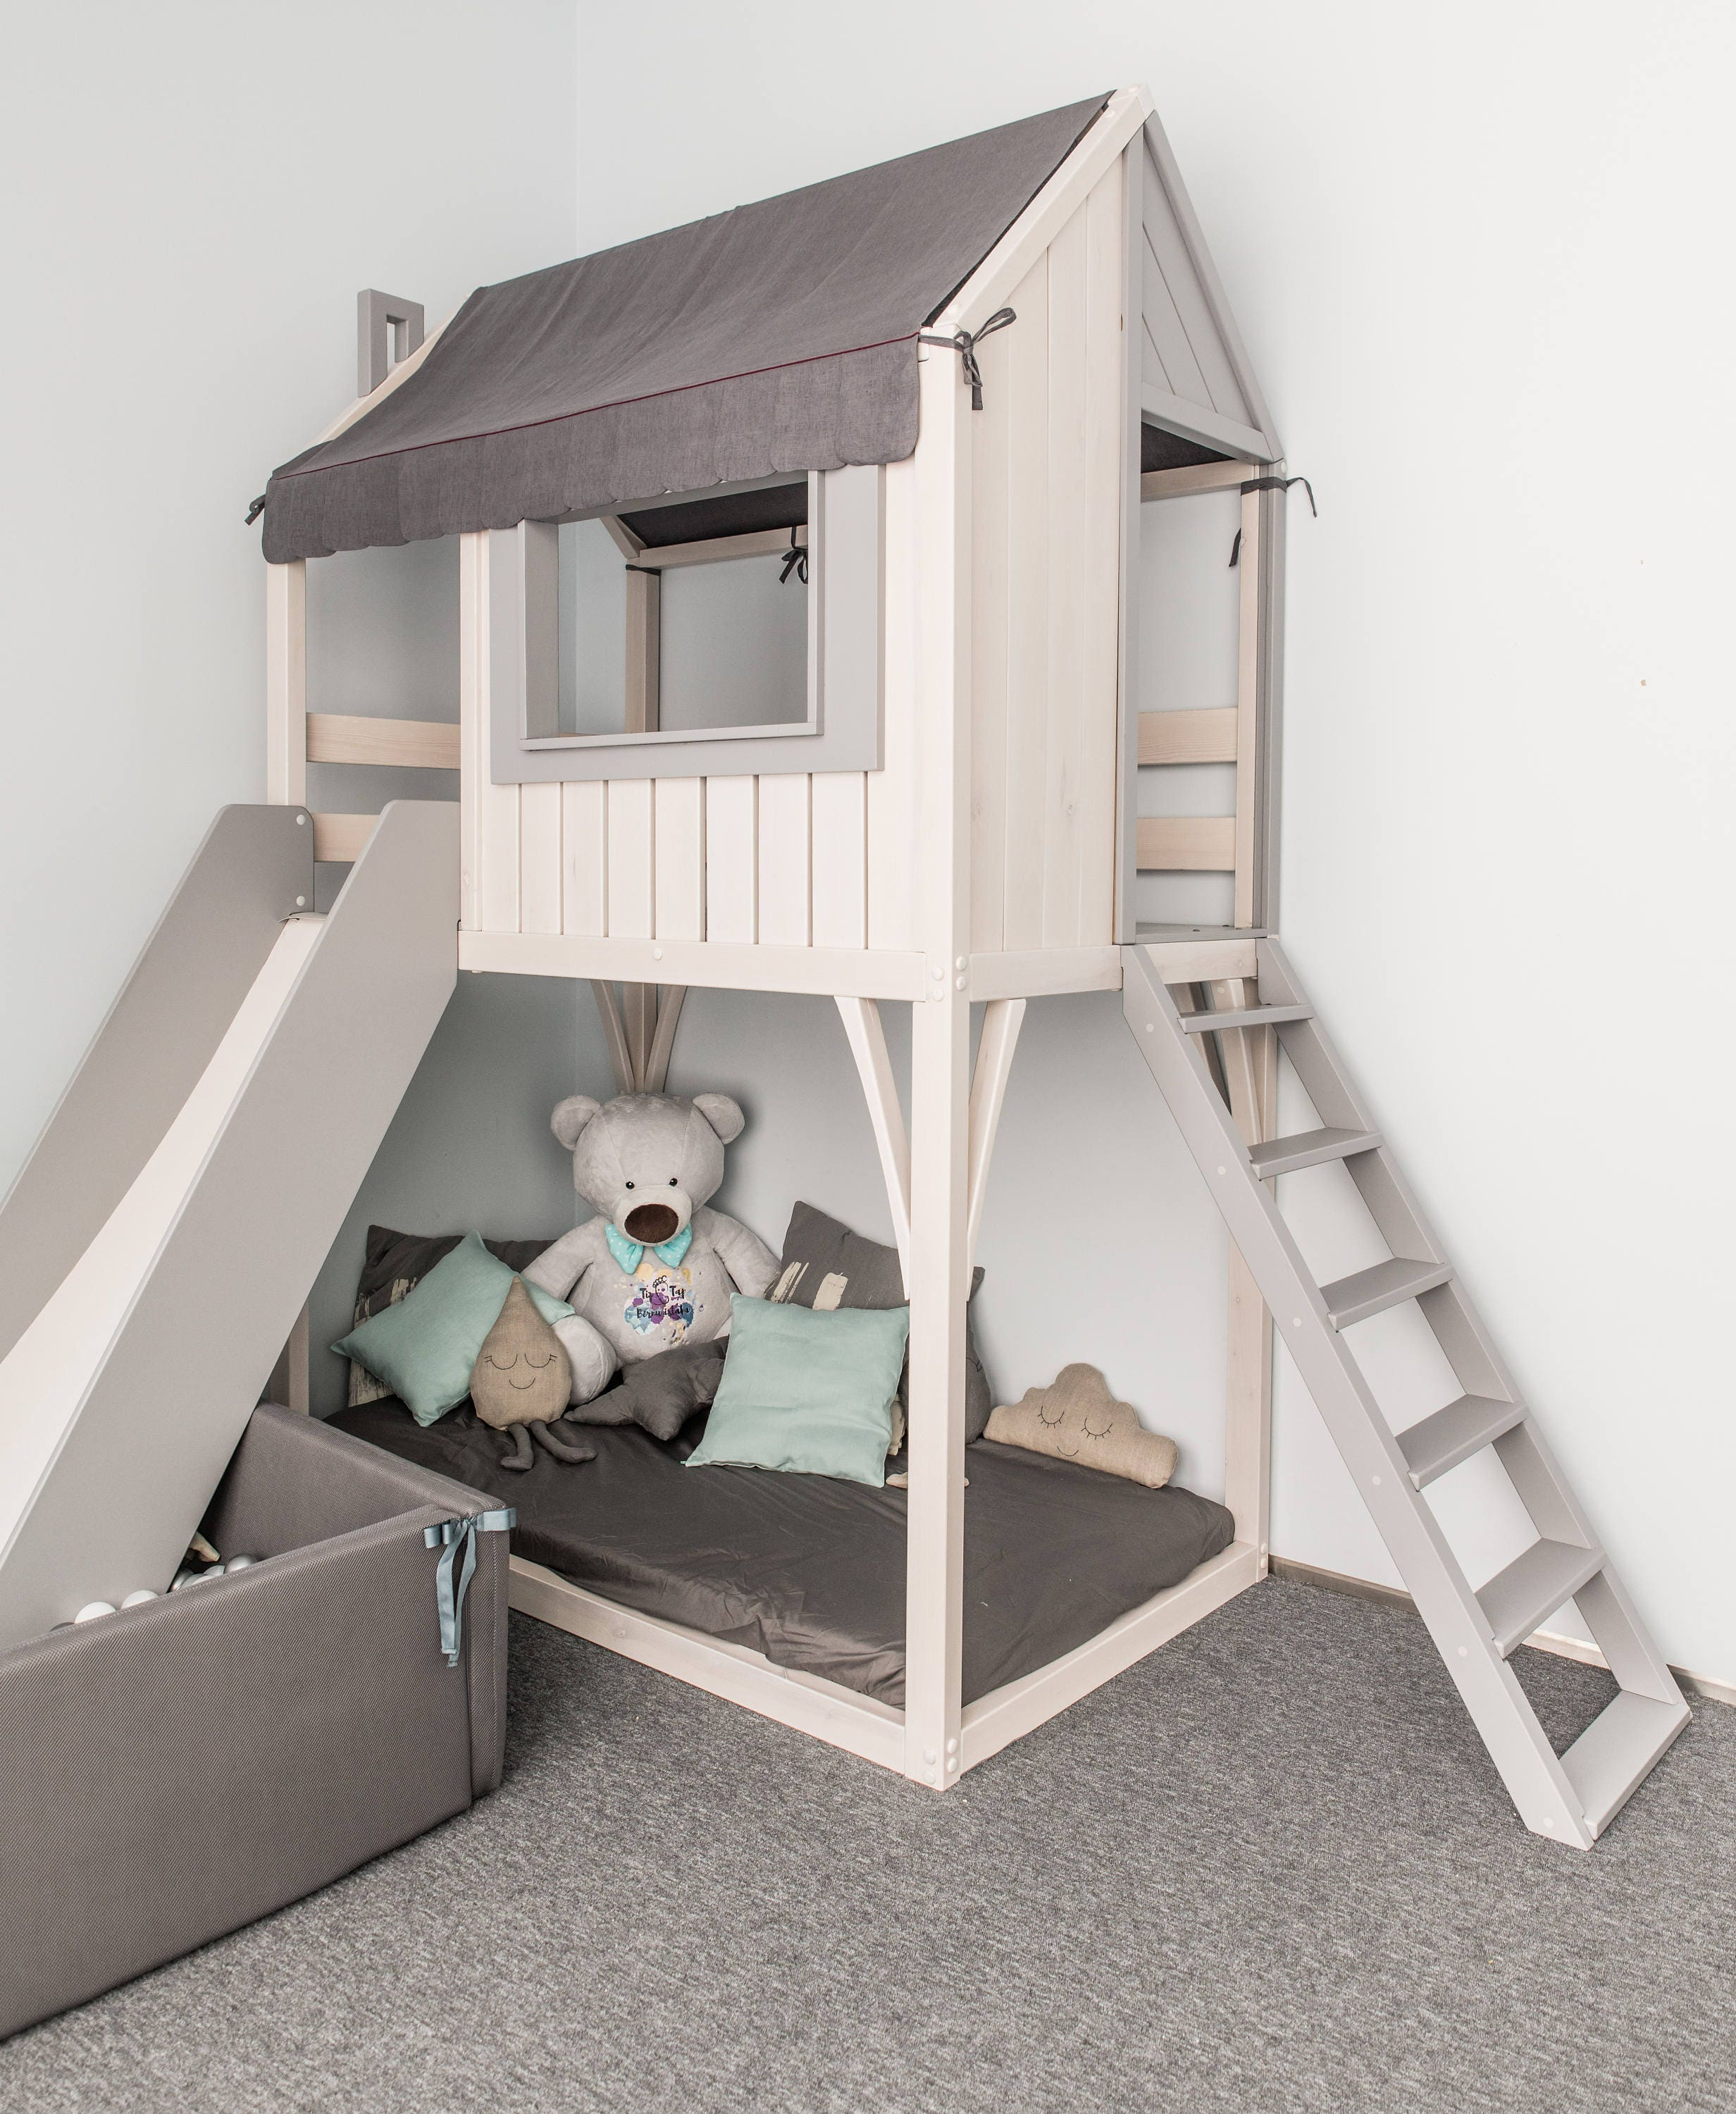 loft bed playhouse children bed bunk bed for kids kids etsy. Black Bedroom Furniture Sets. Home Design Ideas